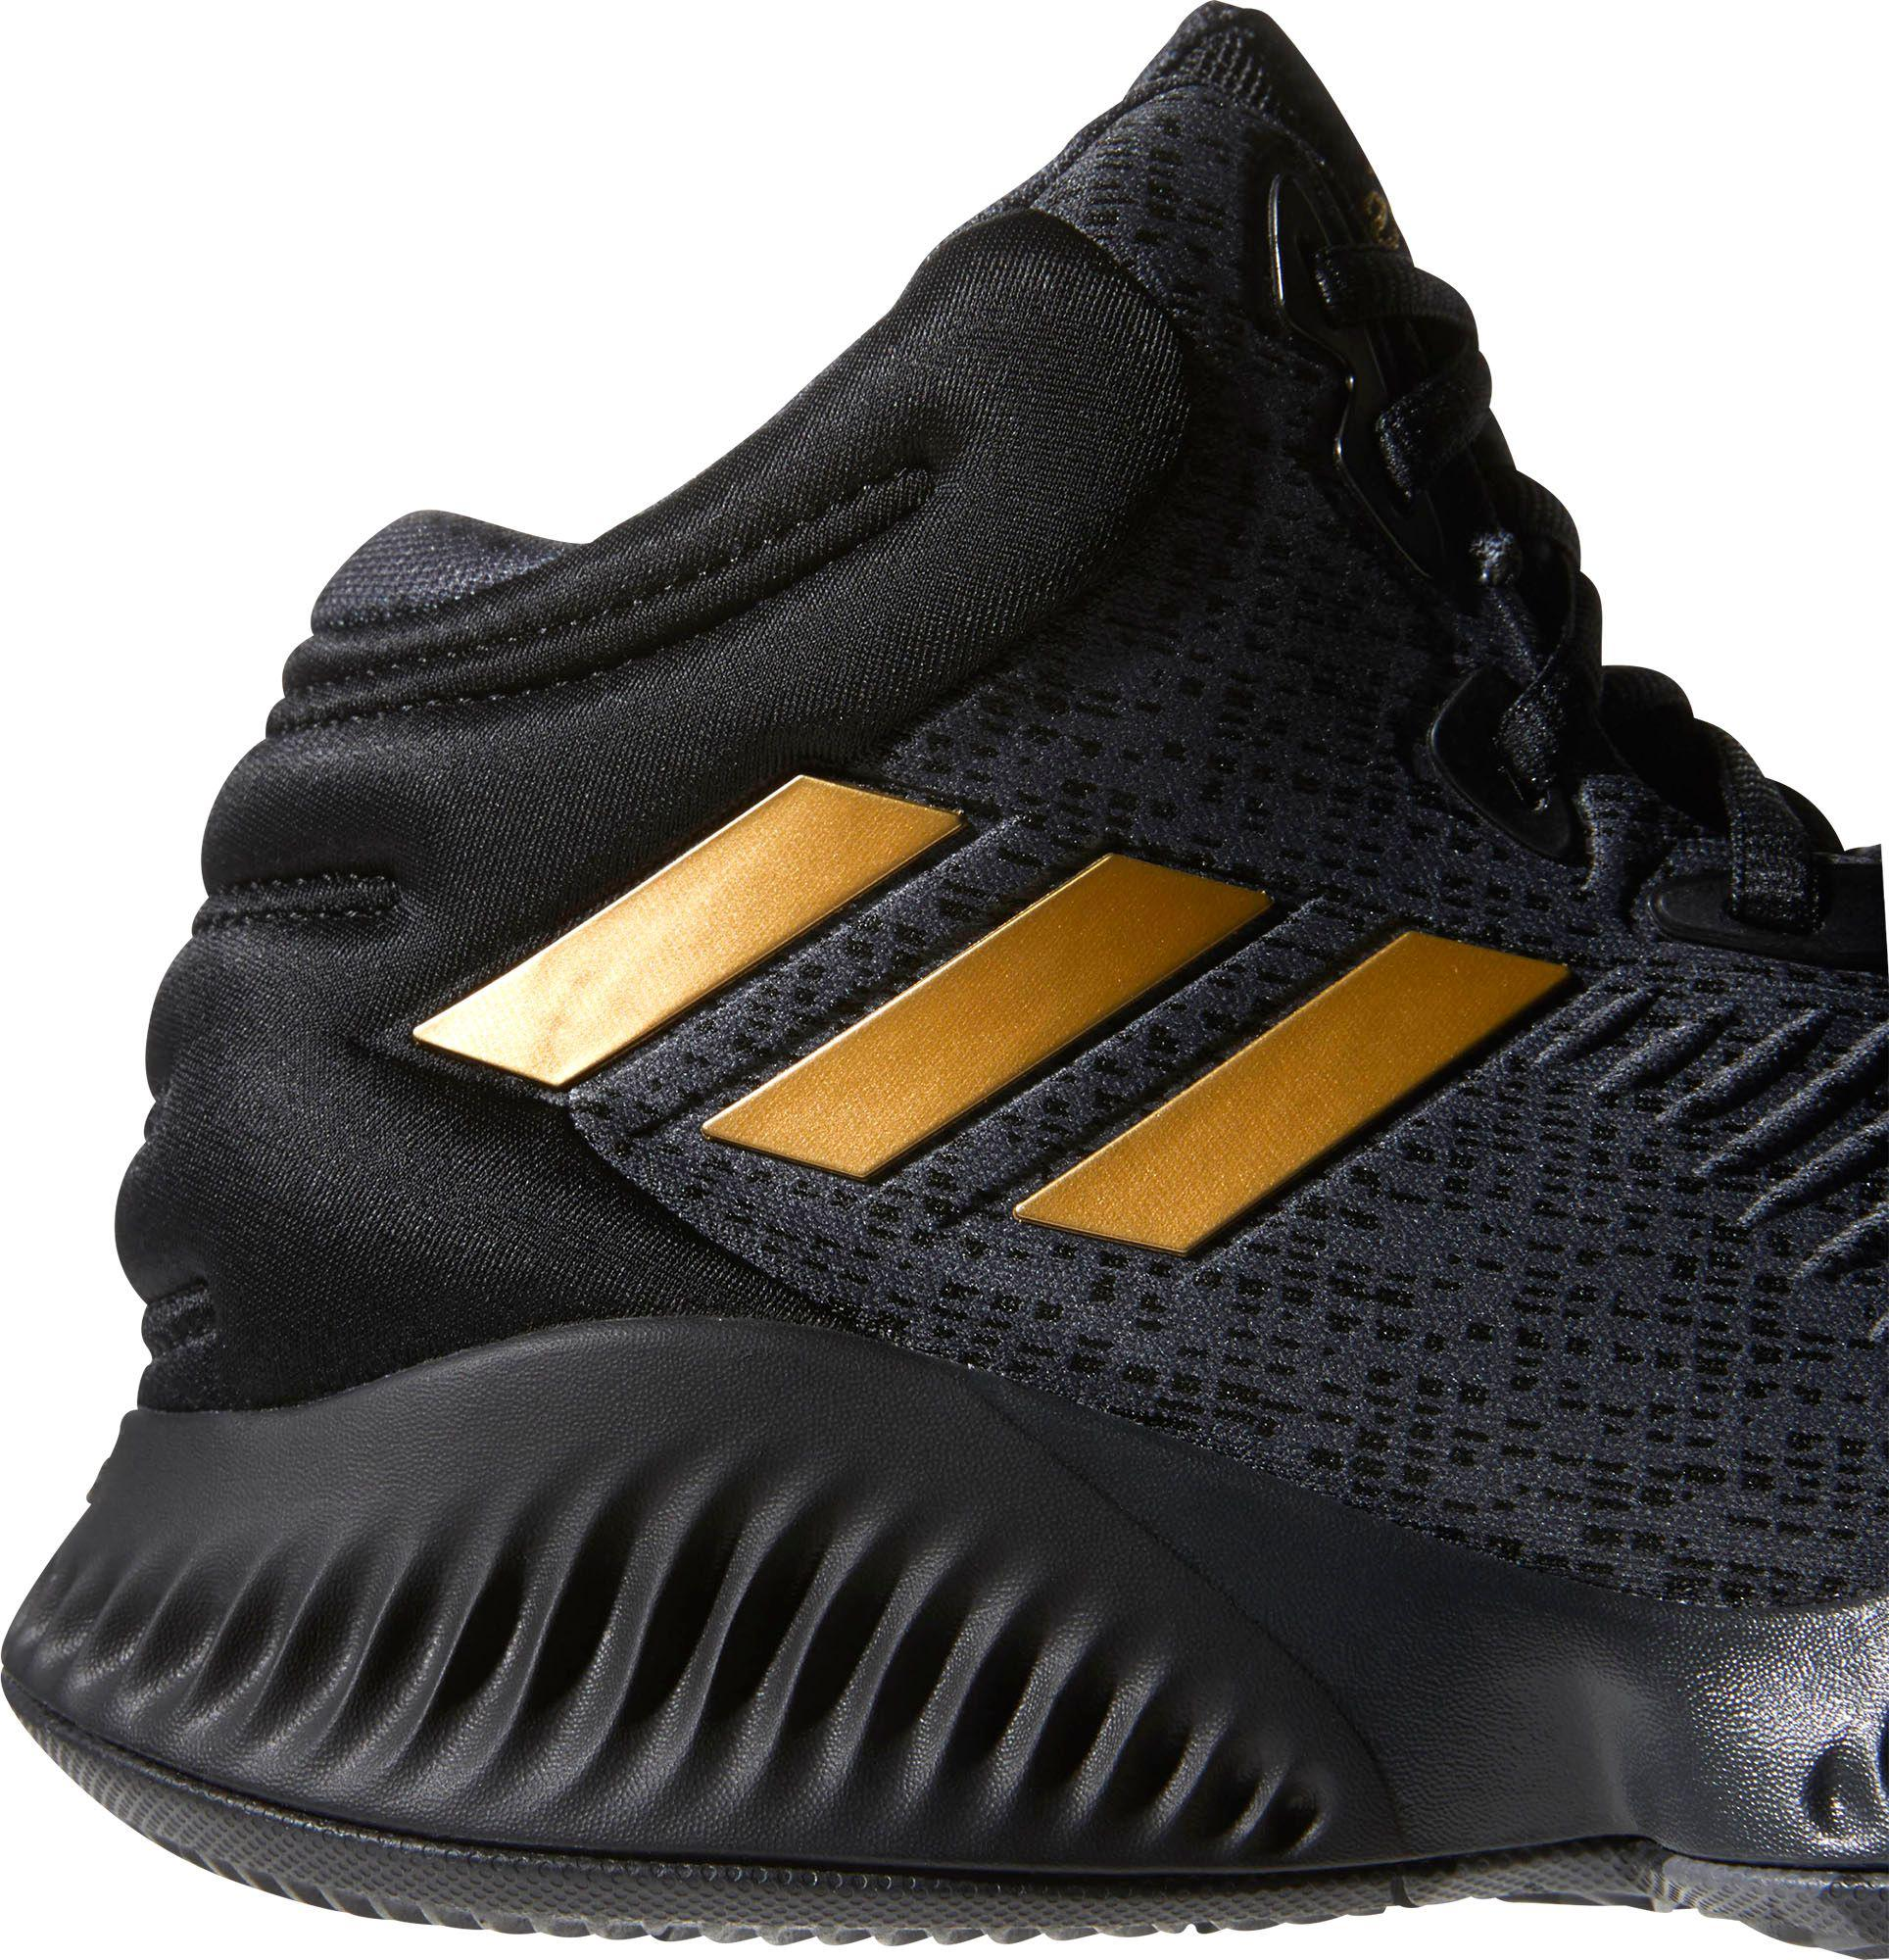 9d8651a3d8d adidas Mad Bounce 2018 Basketball Shoes in Black for Men - Lyst